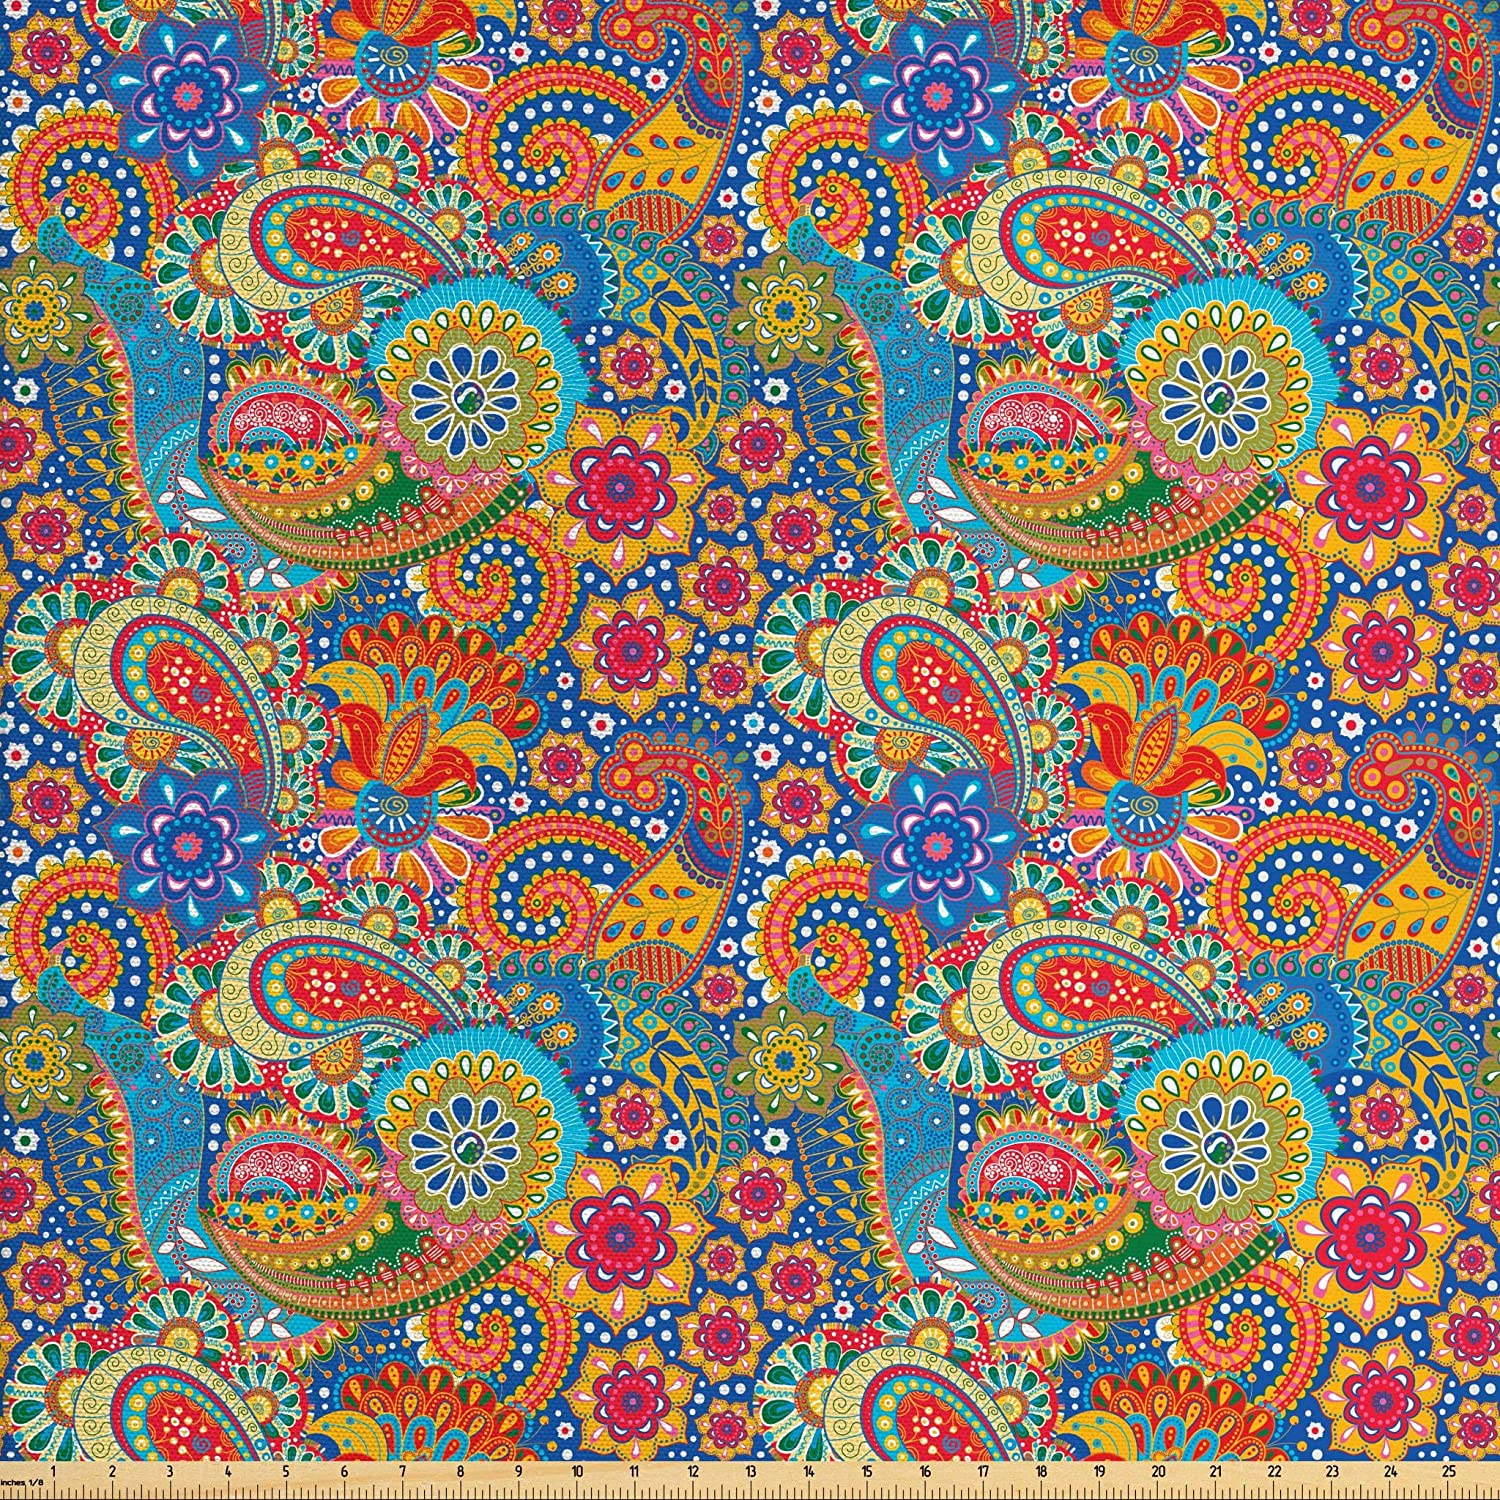 Lunarable Asian Fabric by The Yard, Colorful Paisley Floral Pattern Classical Ornamental Medieval Art, Decorative Fabric for Upholstery and Home Accents, 1 Yard, Blue Yellow